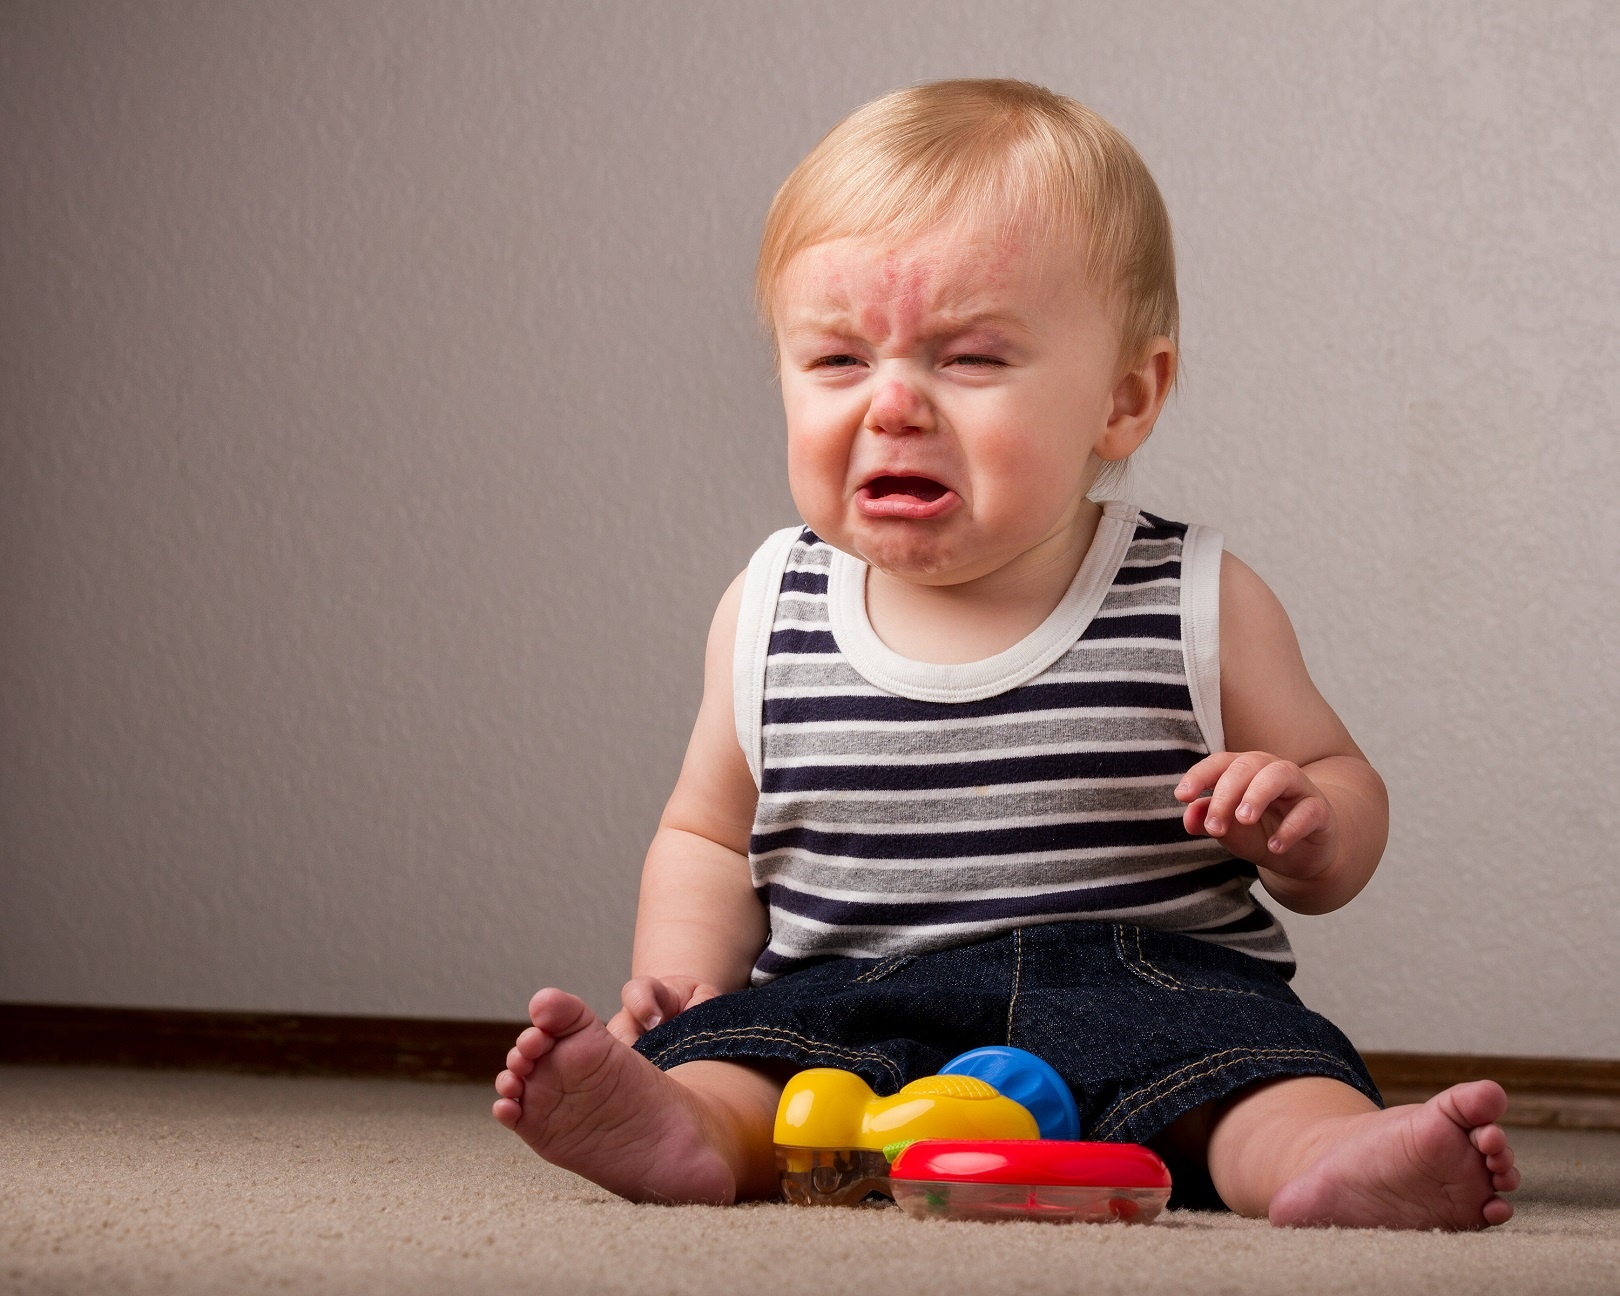 The Most Common Reasons why Babies Get Angry - The Most Common Reasons why Babies Get Angry